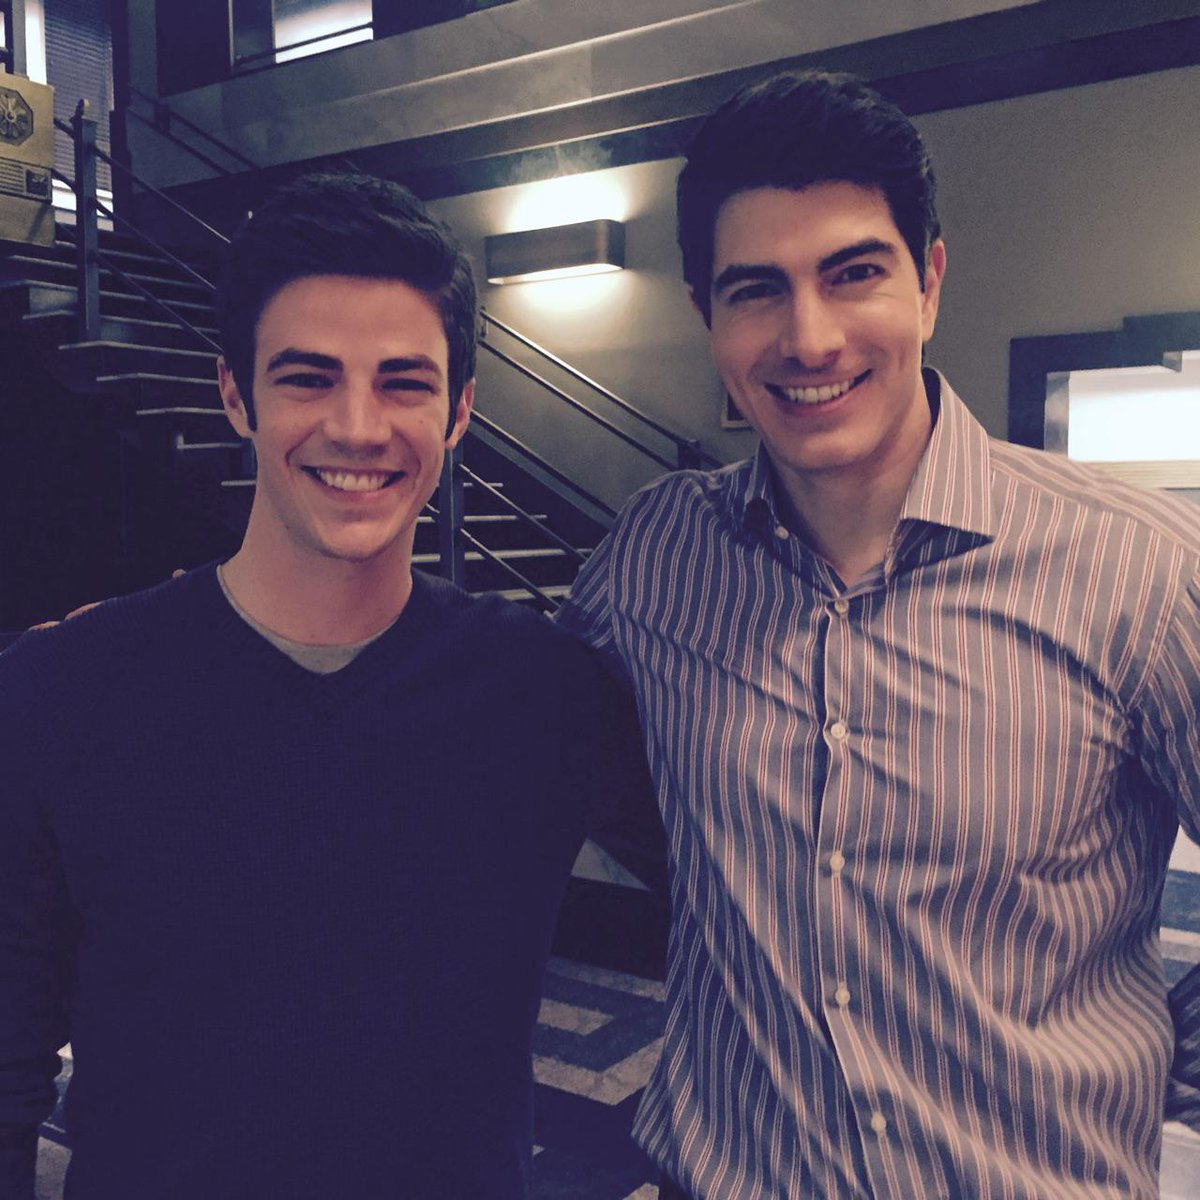 Don't worry @_CourtneyFord_ , I totally didn't tell @grantgust u think he's cute. Secrets safe with me. Yup. #BarRay http://t.co/XAVlkgxofz